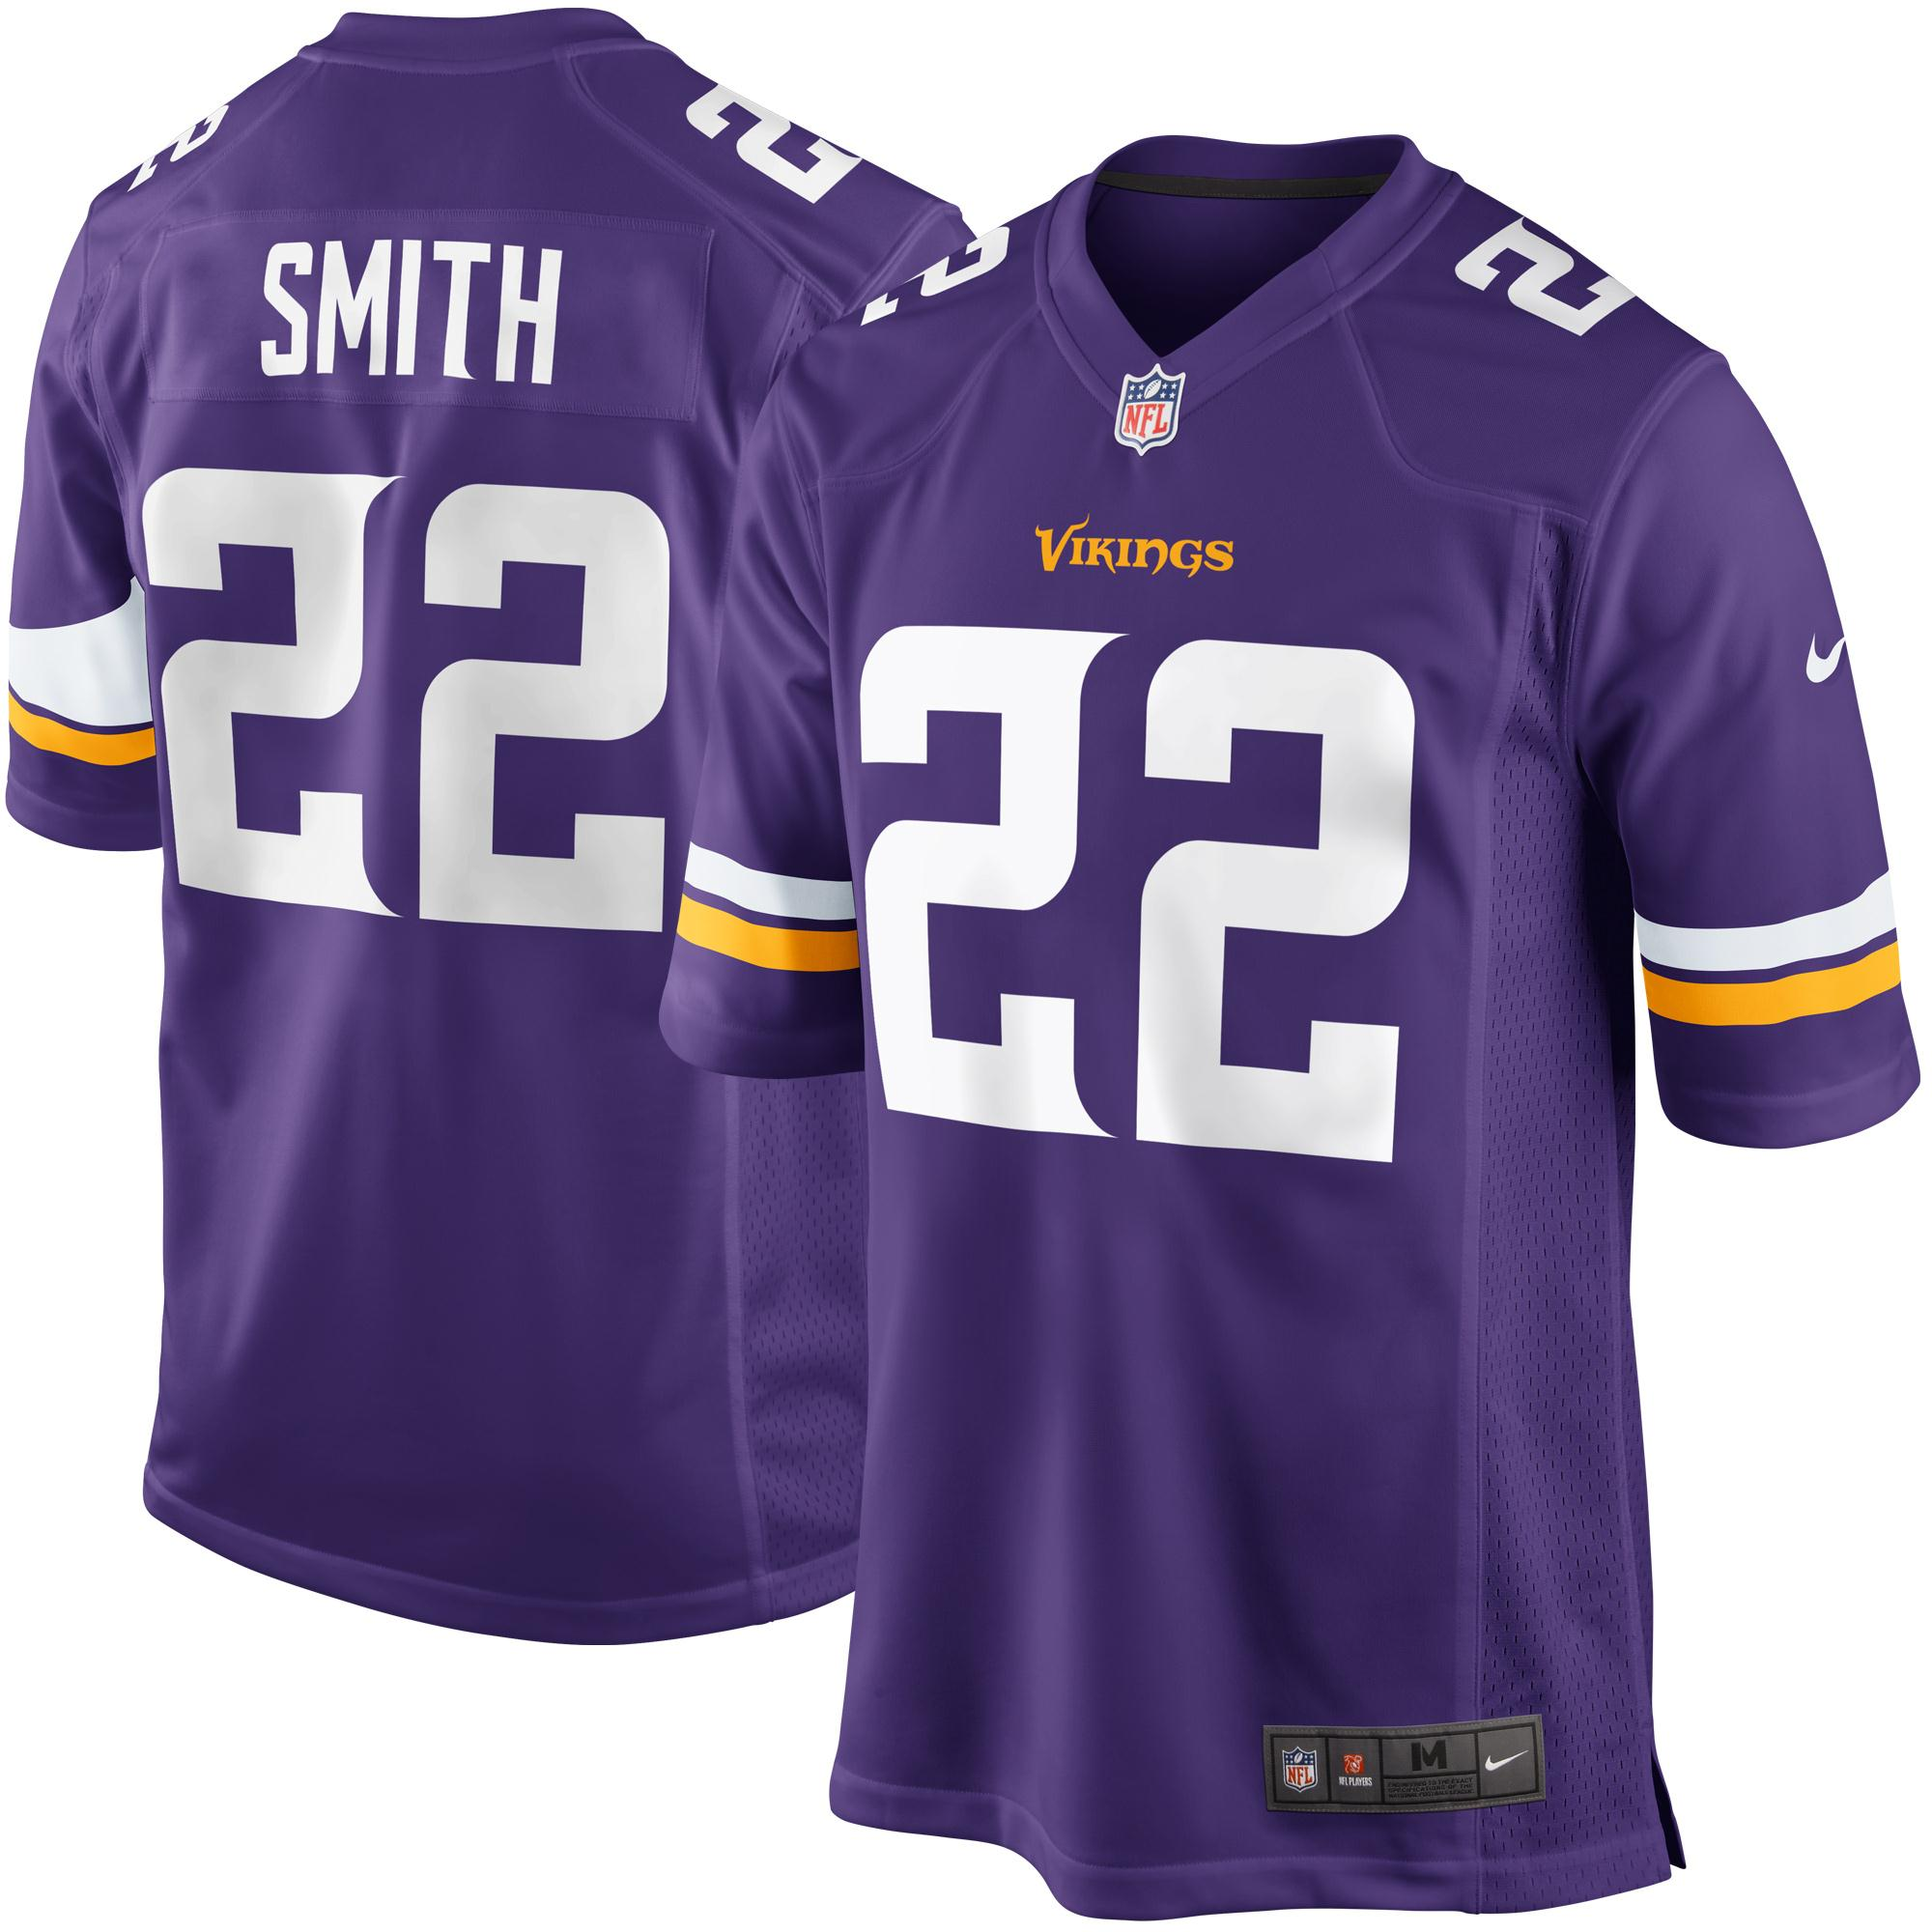 Harrison Smith Minnesota Vikings Nike Game Player Jersey - Purple